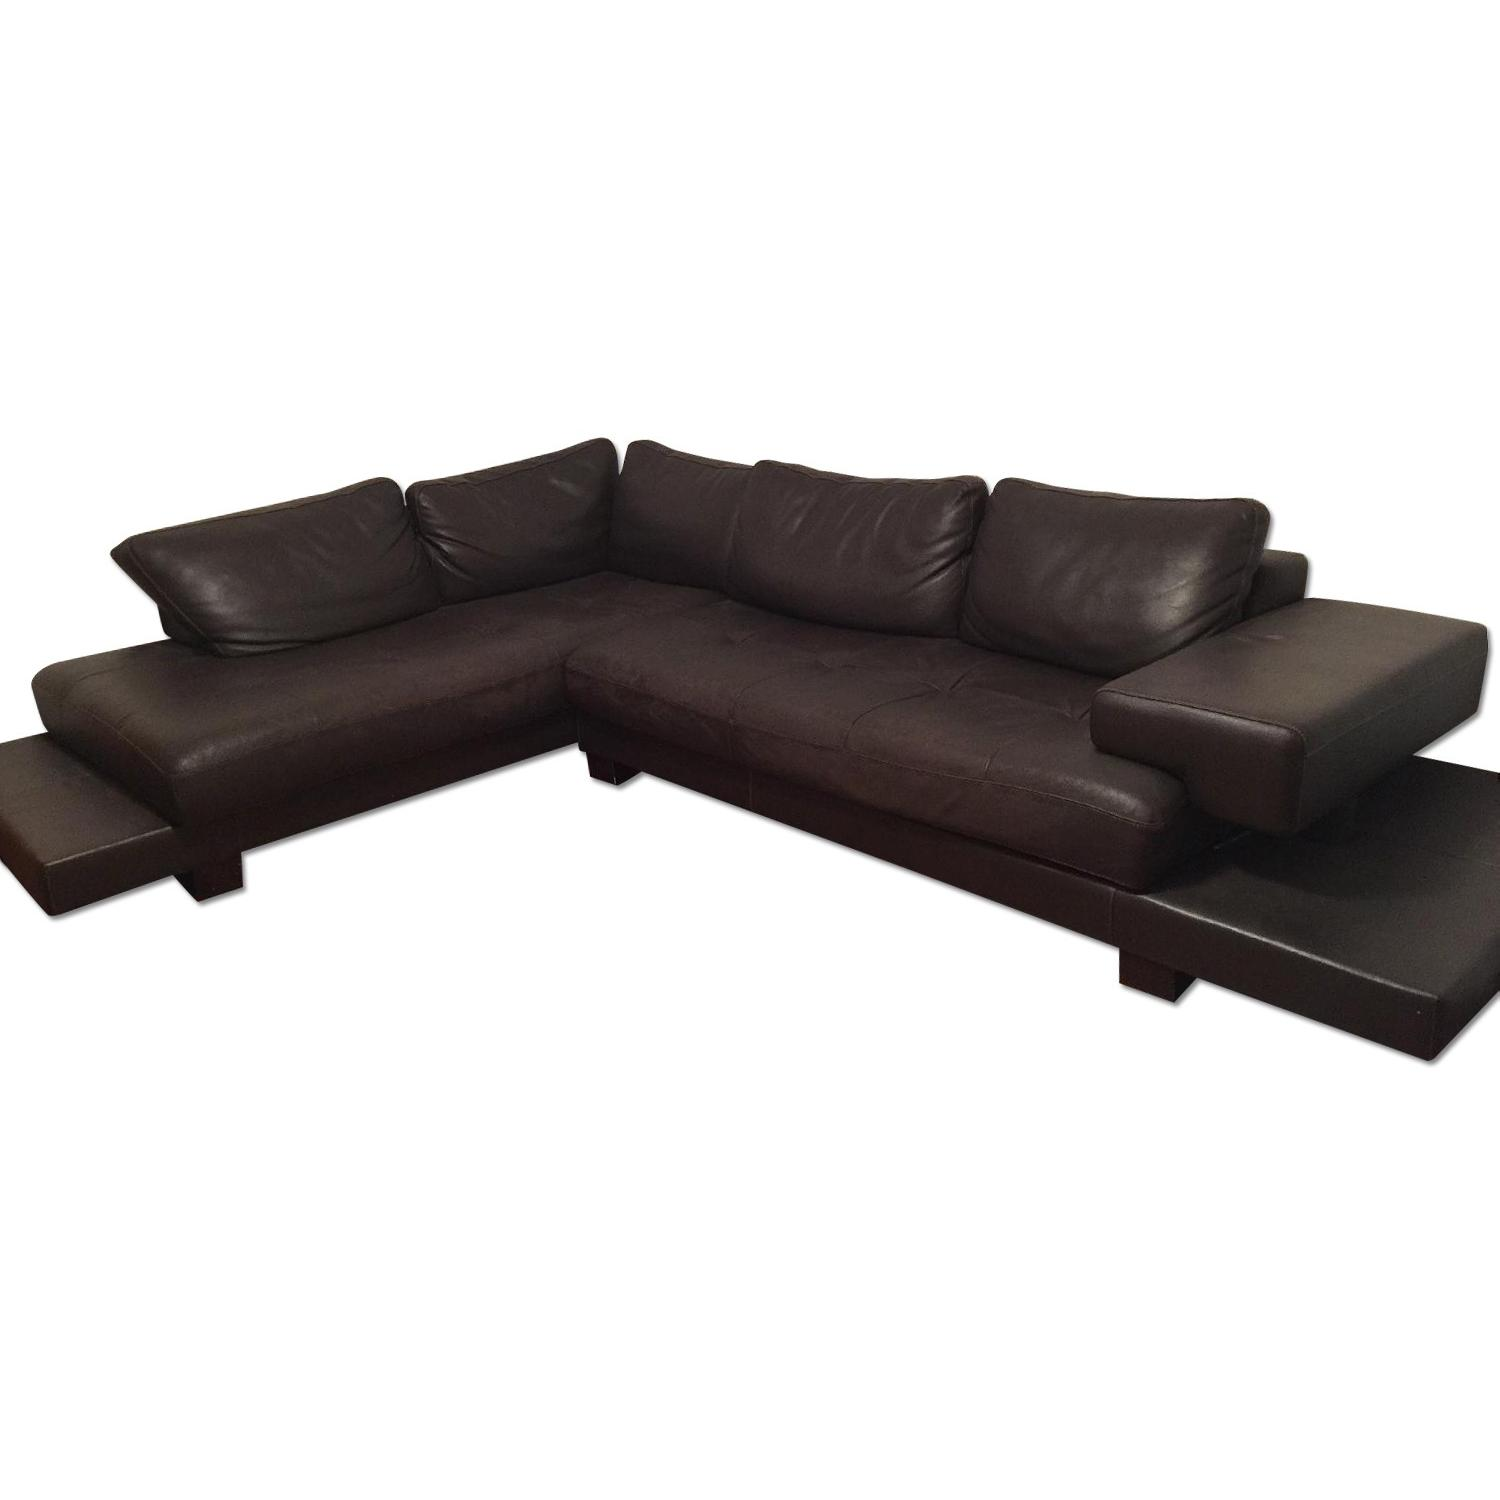 Black Leather 2 Piece Sectional Sofa - image-0